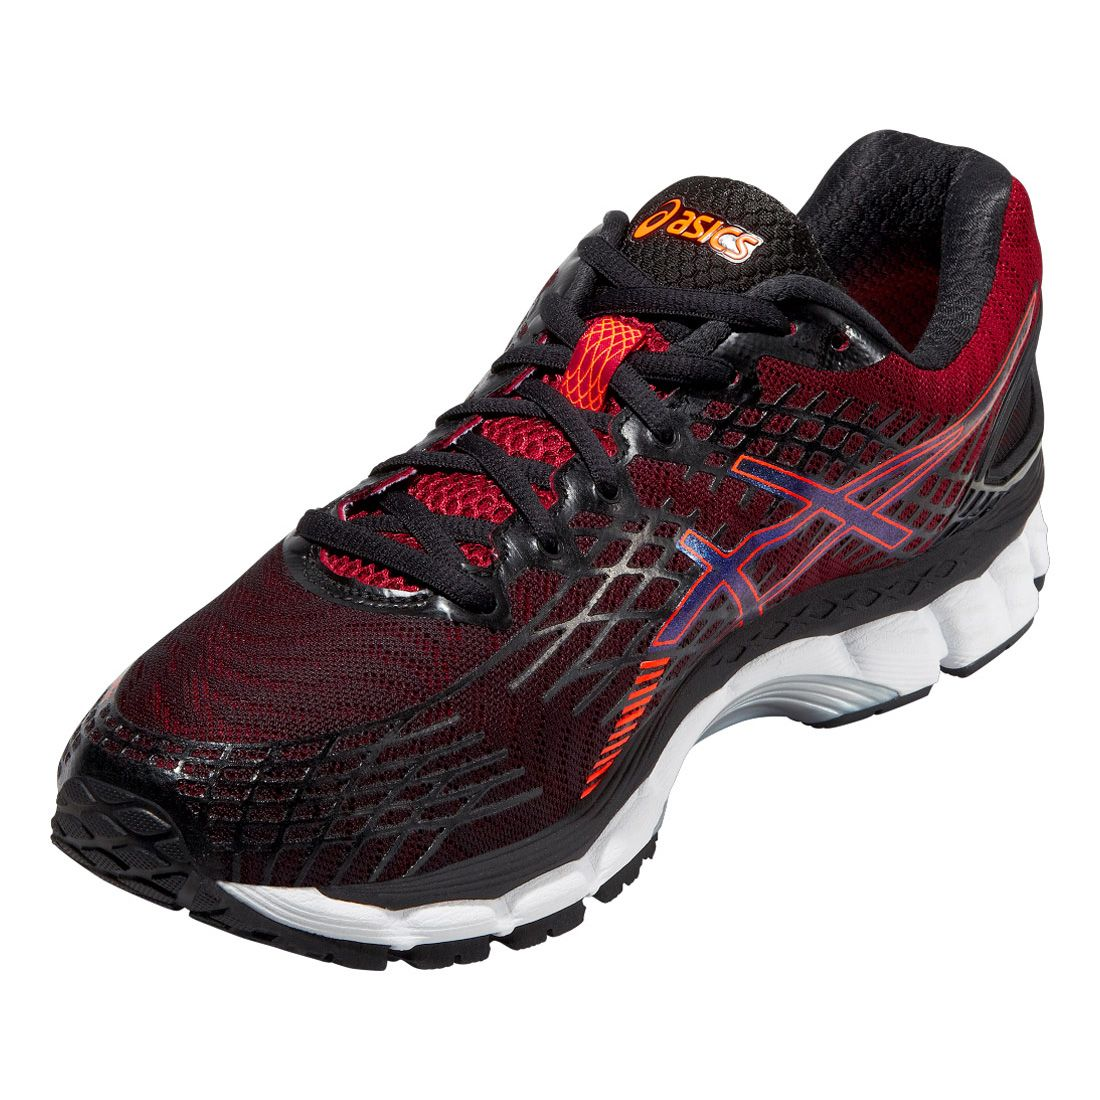 asics gel nimbus 17 mens running shoes aw15. Black Bedroom Furniture Sets. Home Design Ideas